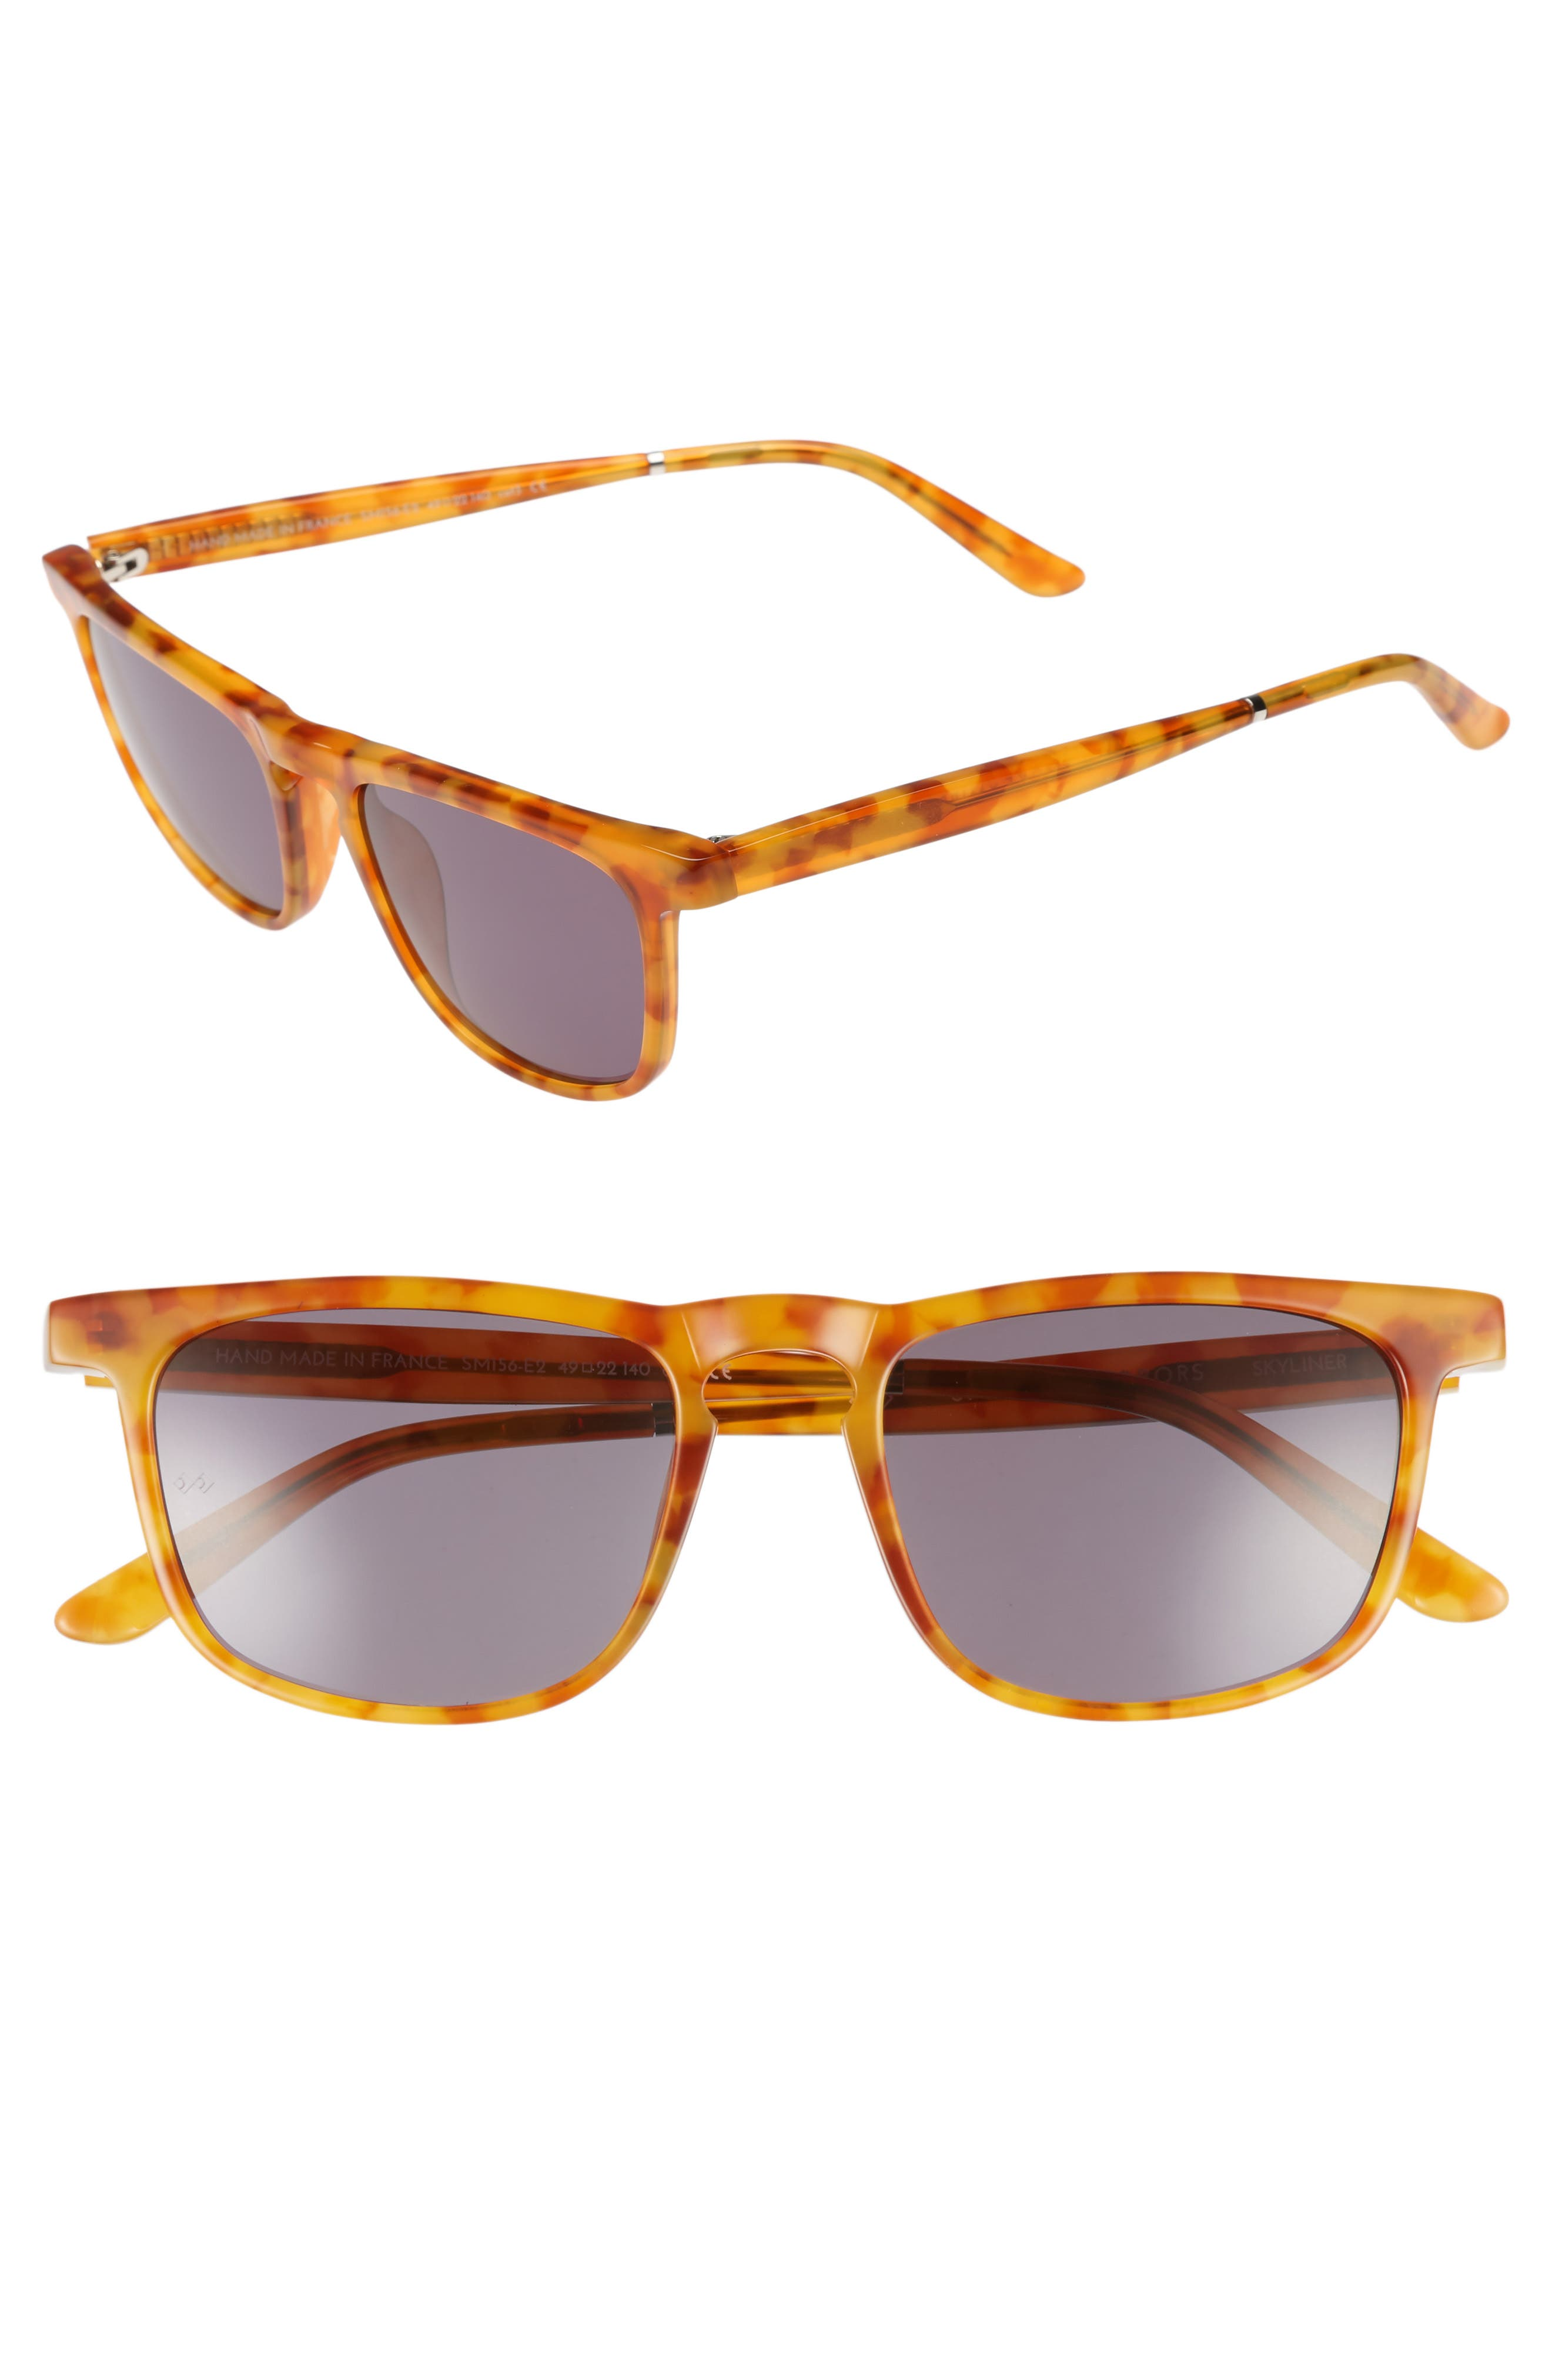 Skyliner 49mm Sunglasses,                         Main,                         color,